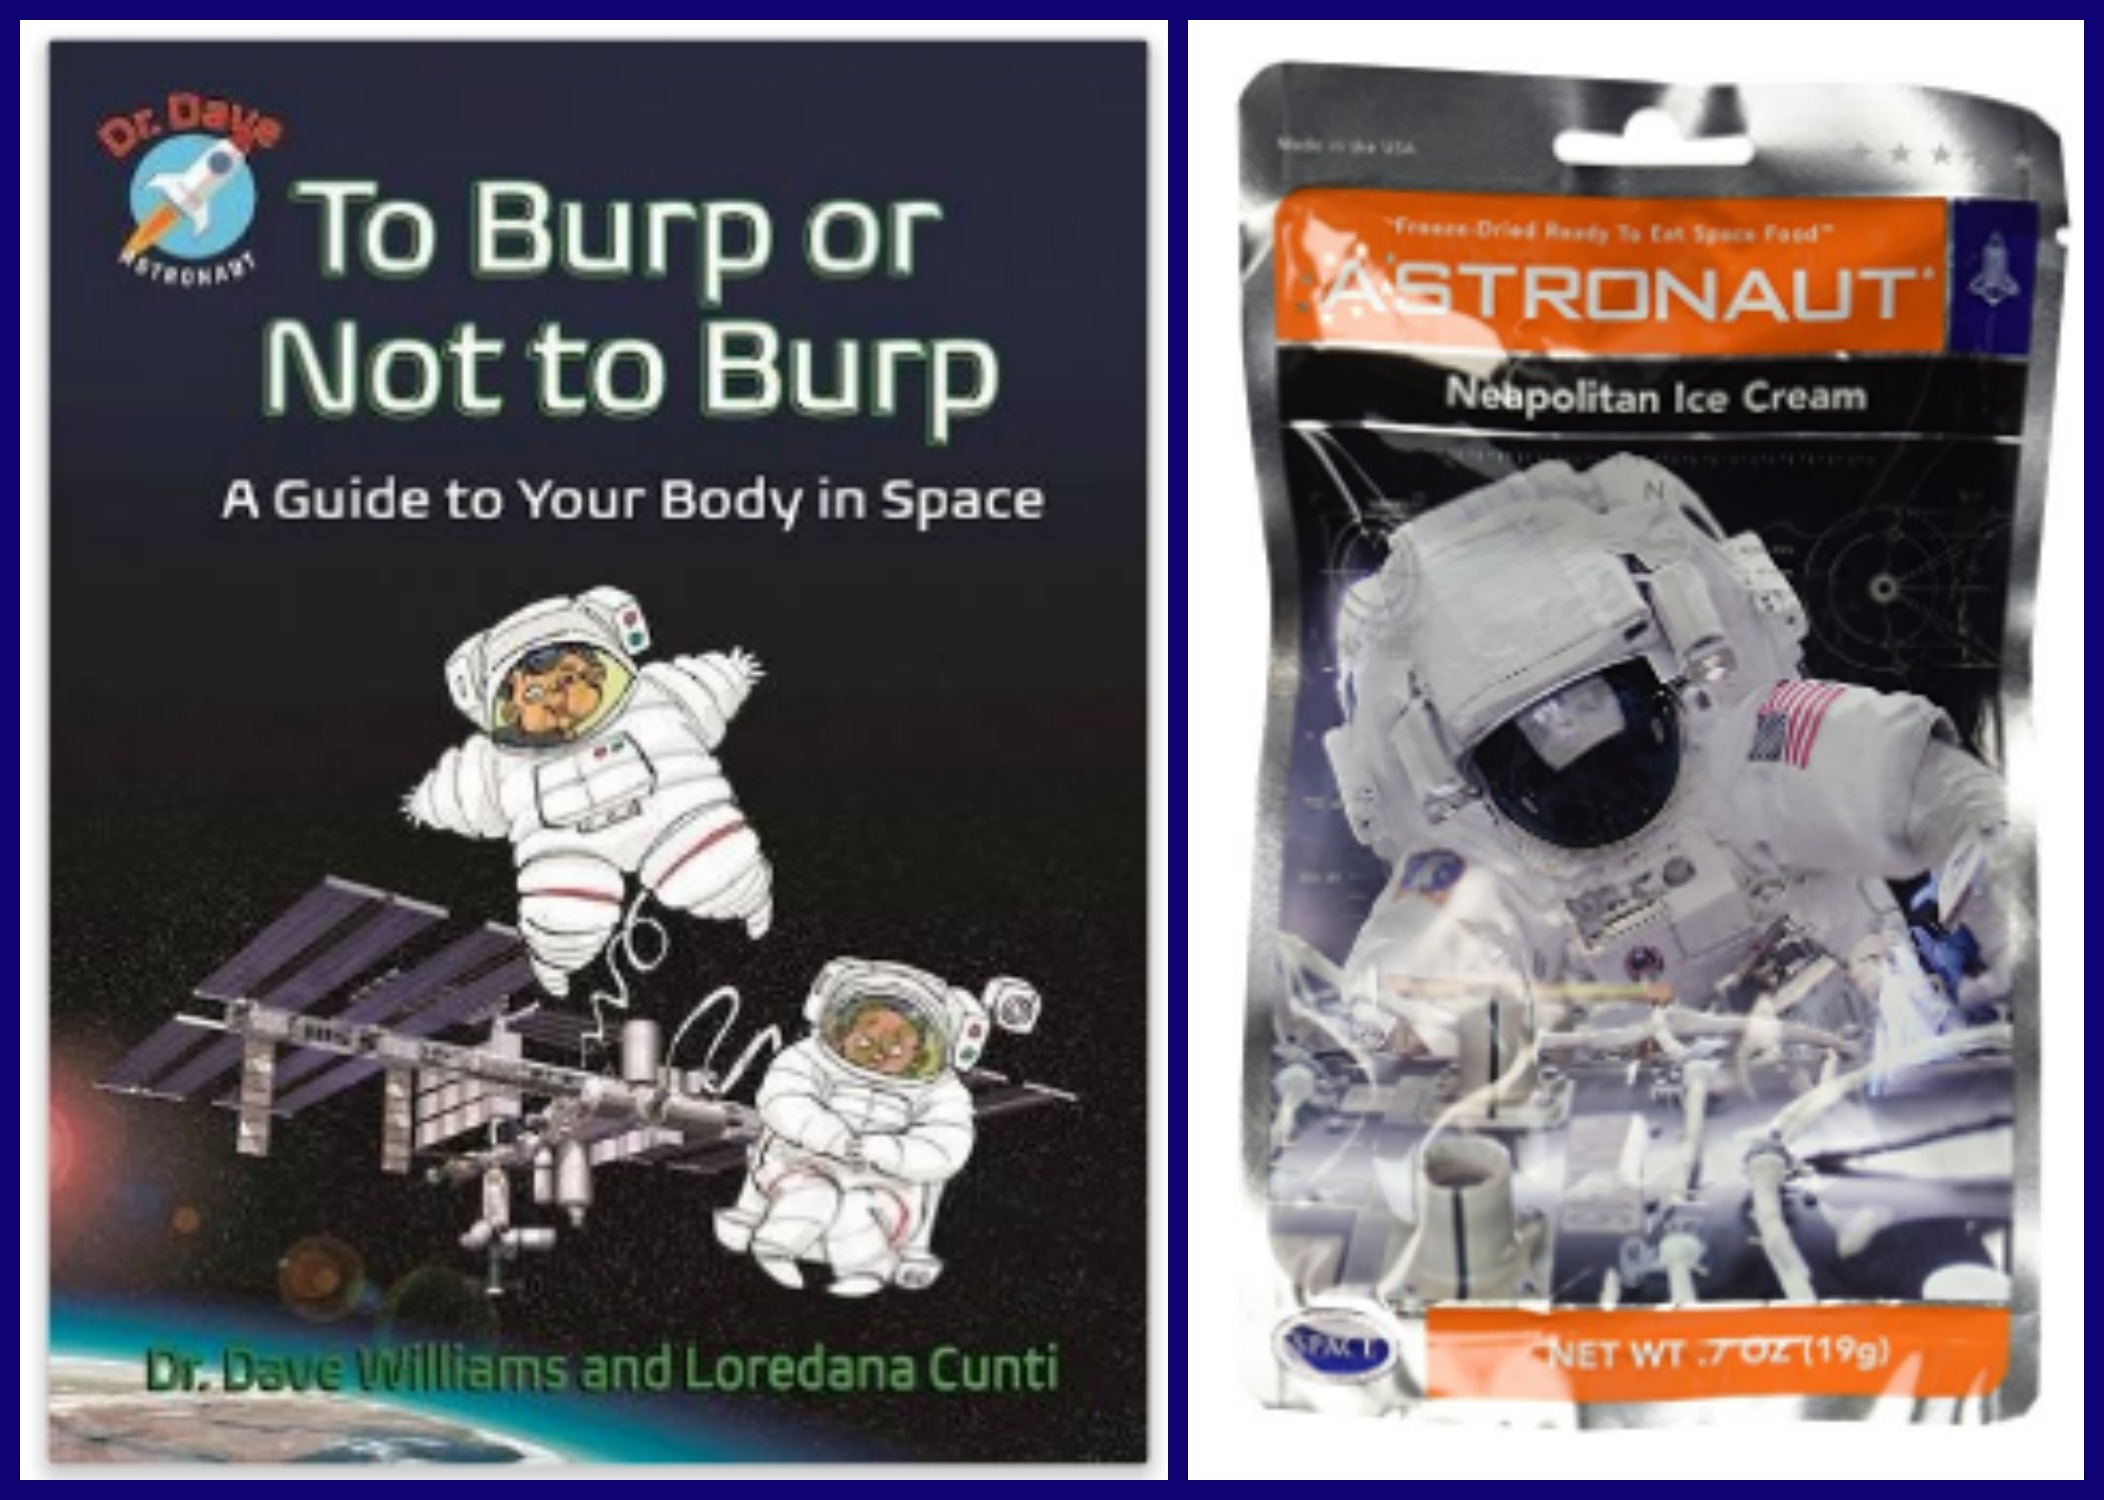 Astronaut Prize Pack